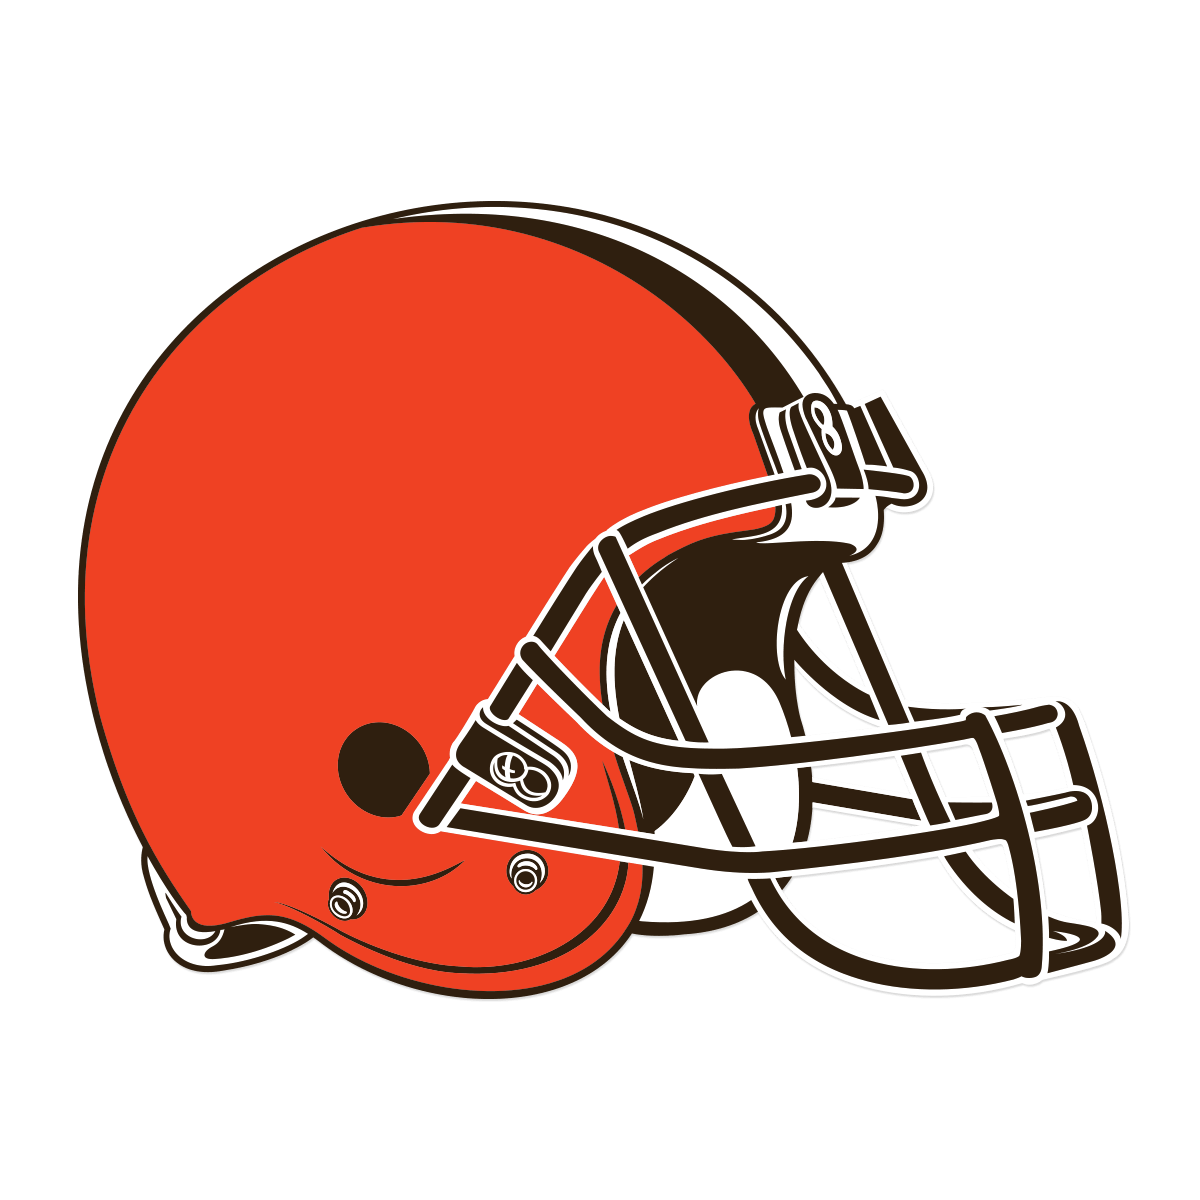 Steelers football helmet clipart freeuse download 2015 vs 2014 Browns logo animated GIF comparison : nfl freeuse download